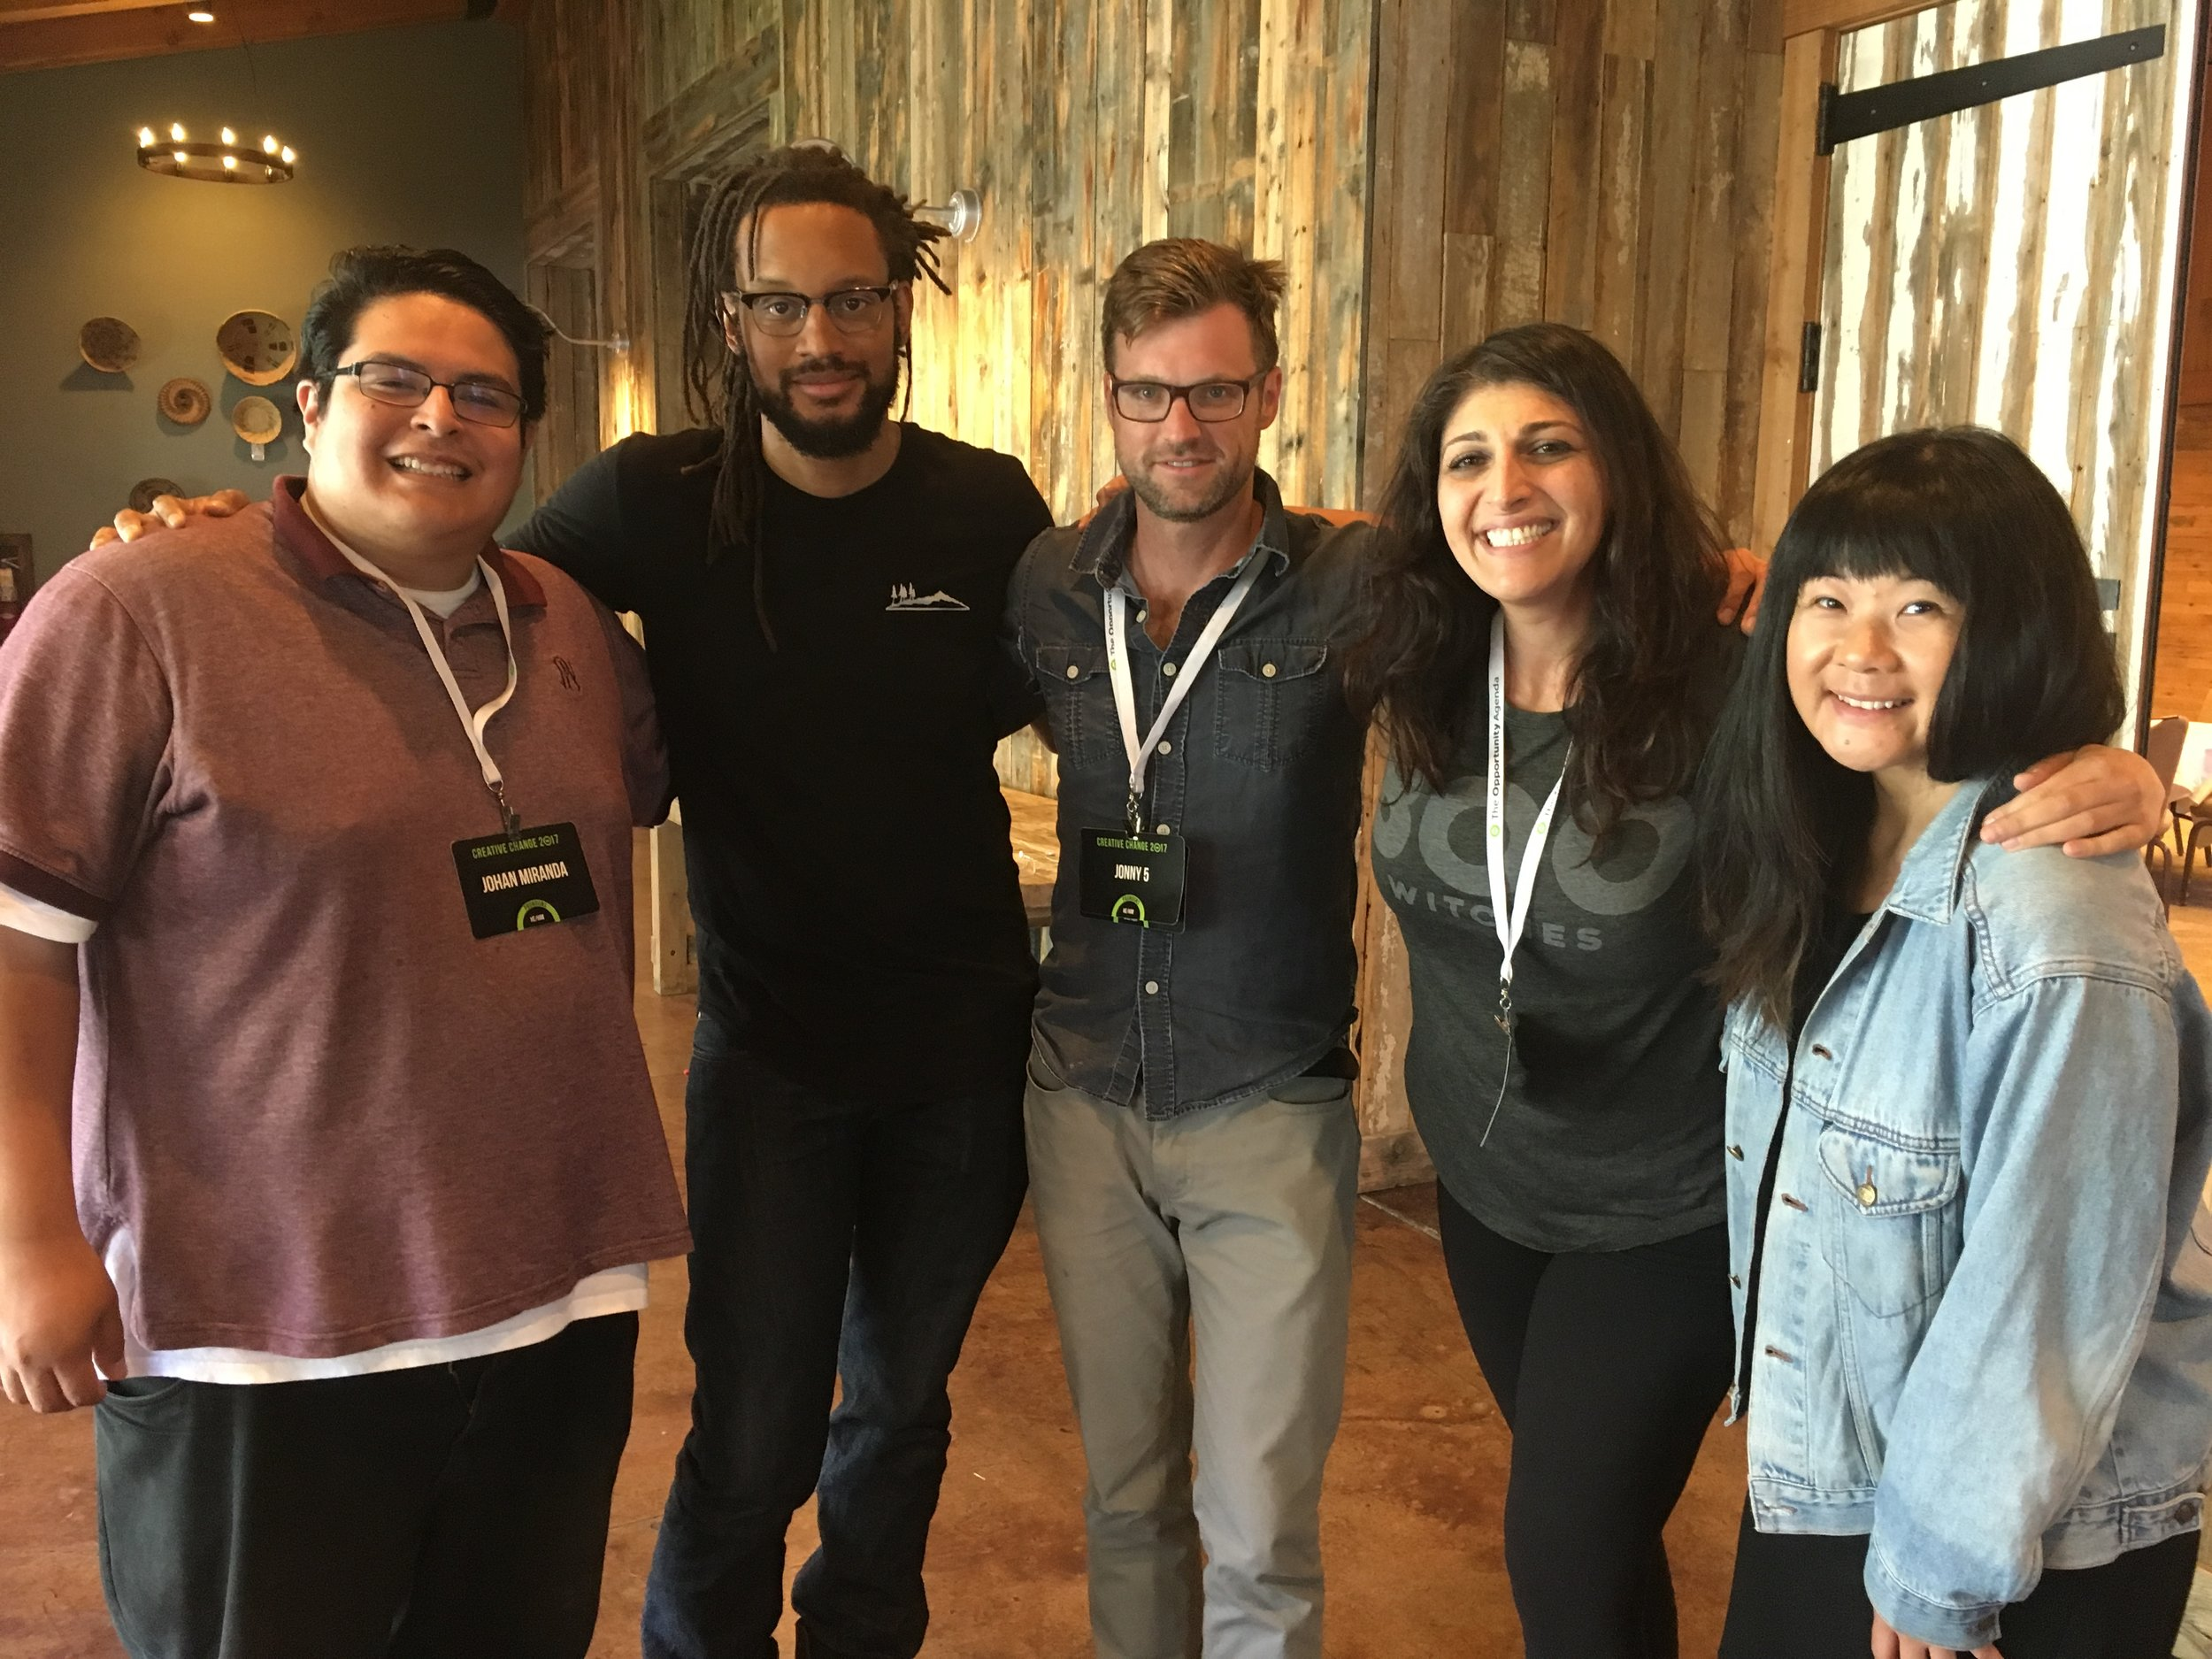 "Pictured L to R - Johan Miranda, Brer Rabbit, Jonny 5, Zahra Noorbakhsh, Jenny Yang   At The Opportunity Agenda's ""Creative Change"" retreat at Sundance, Jonny & Brer turn to three stand-up comedians for podcast advice. Things take a scandalous turn right away, as the hosts become the guests and the comedians begin probing into the Flobots' teenage years.  @ Zahracomedy  co-host of  #GoodMuslimBadMuslim   www.zahracomedy.com   @ Johancomedy   www.johanmiranda.com   @ jennyyangtv  comedian, writer, actor, host jennyyang.tv disorientedcomedy.com comedycomedyfest.com  Music: Quarantine - Flobots"